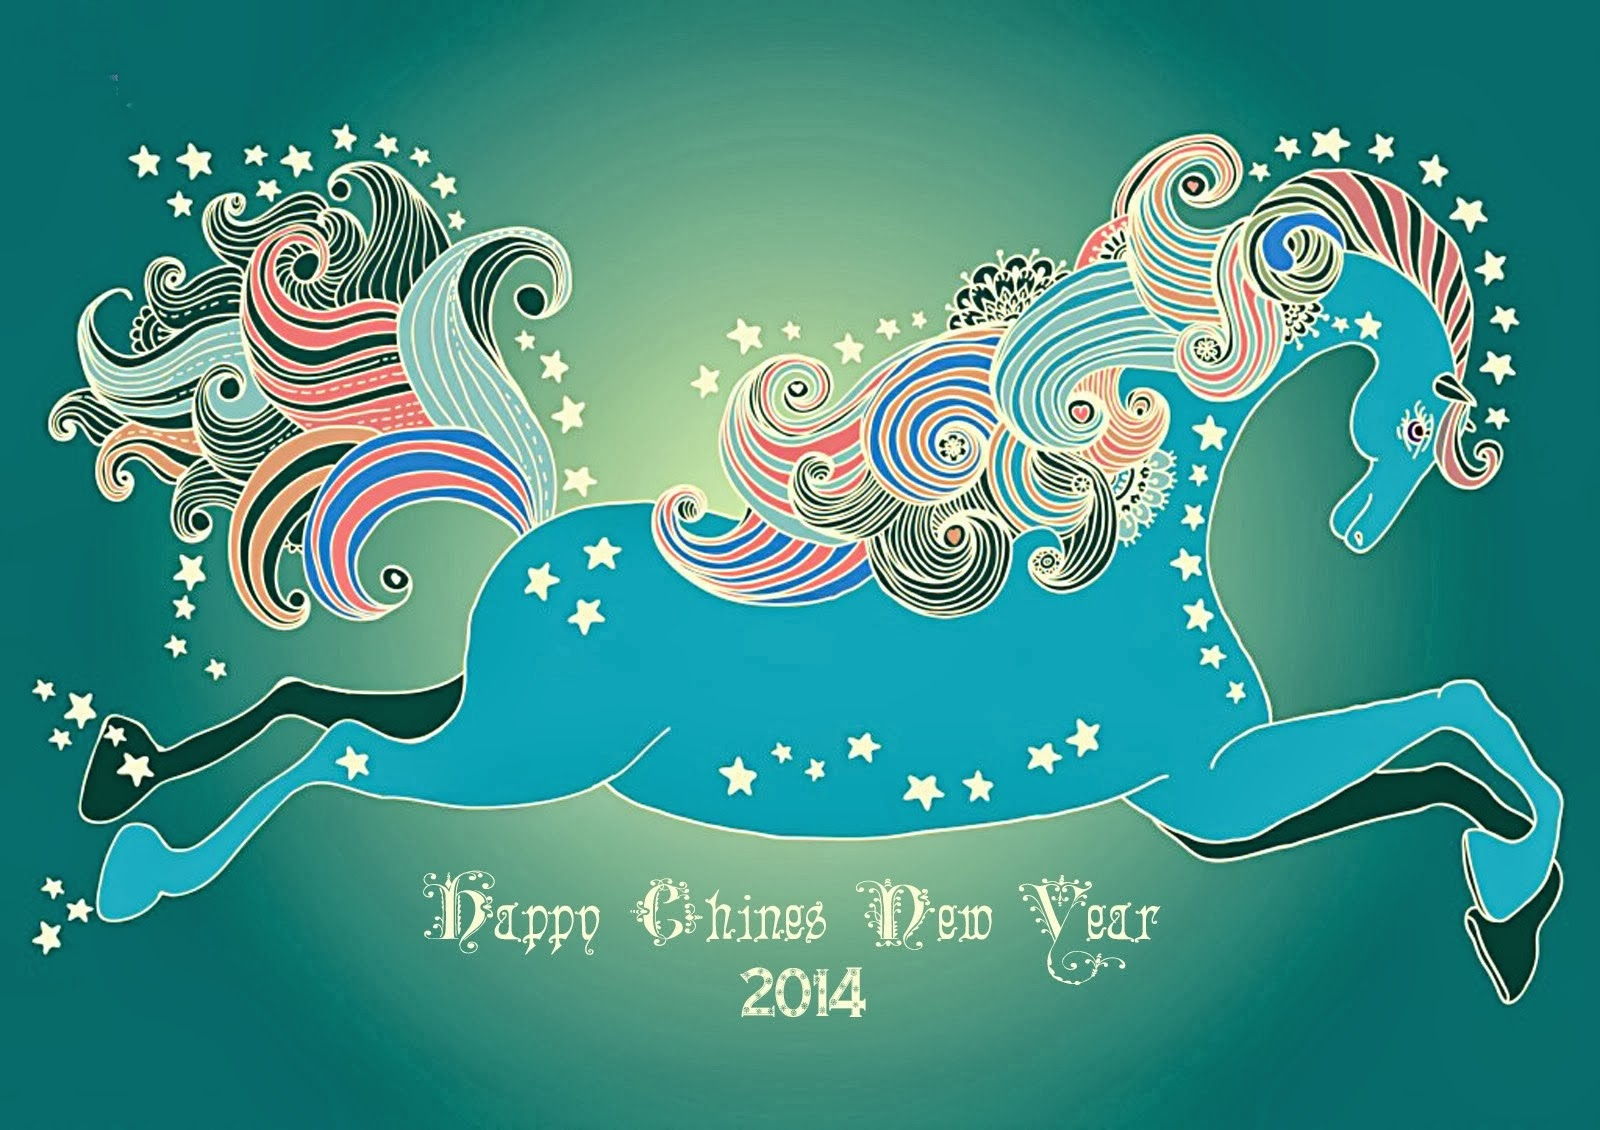 Good Morning Happy Chinese New Year : Happy chinese new year wishes quotes and messages